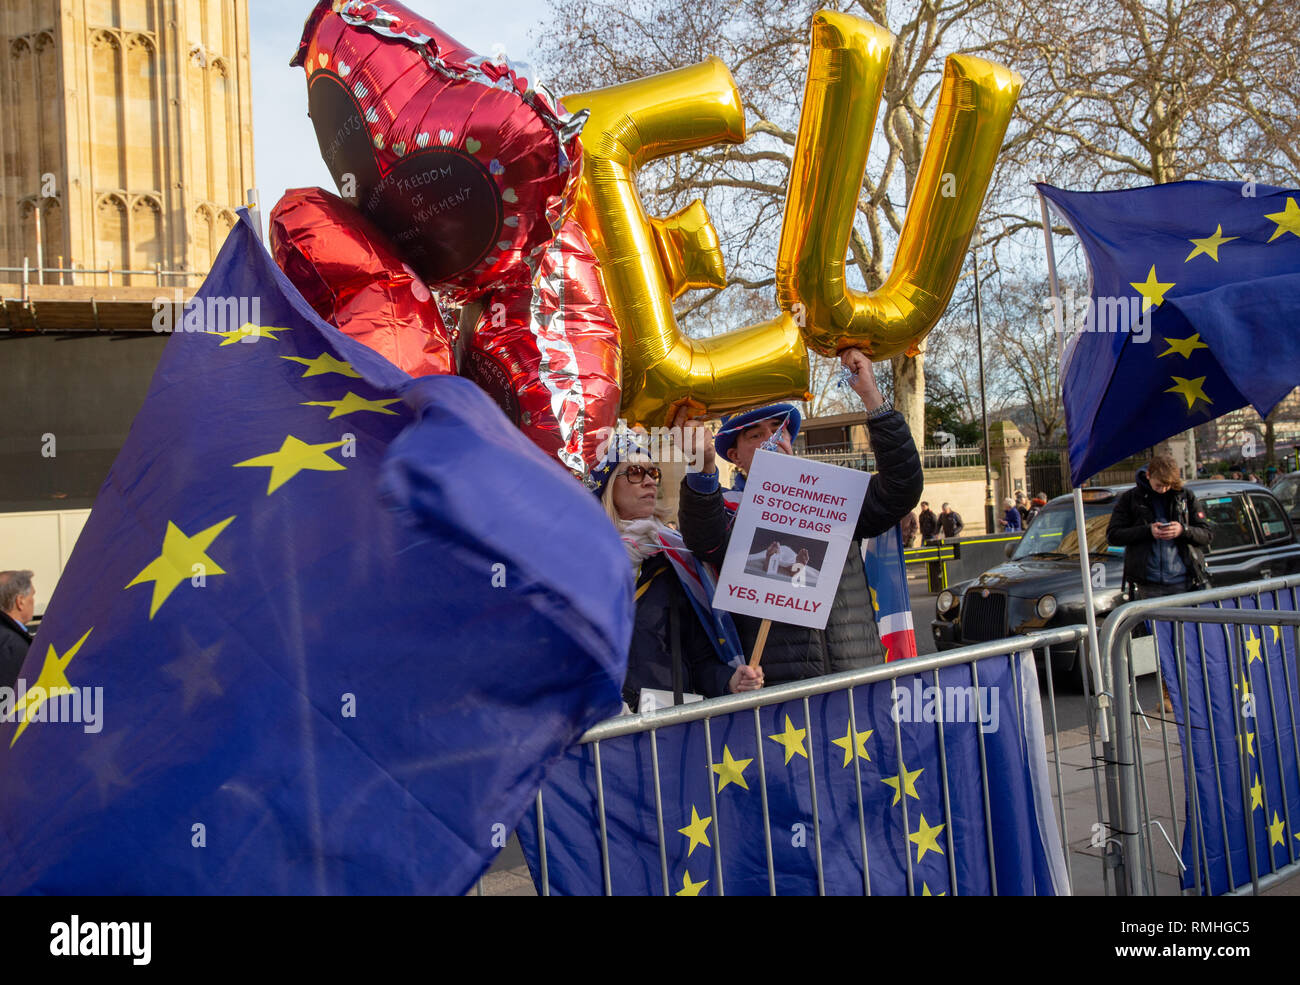 Flags of the European Union and EU helium balloons with Remain supporters demonstrate outside Parliament in support of staying as part of Europe. - Stock Image